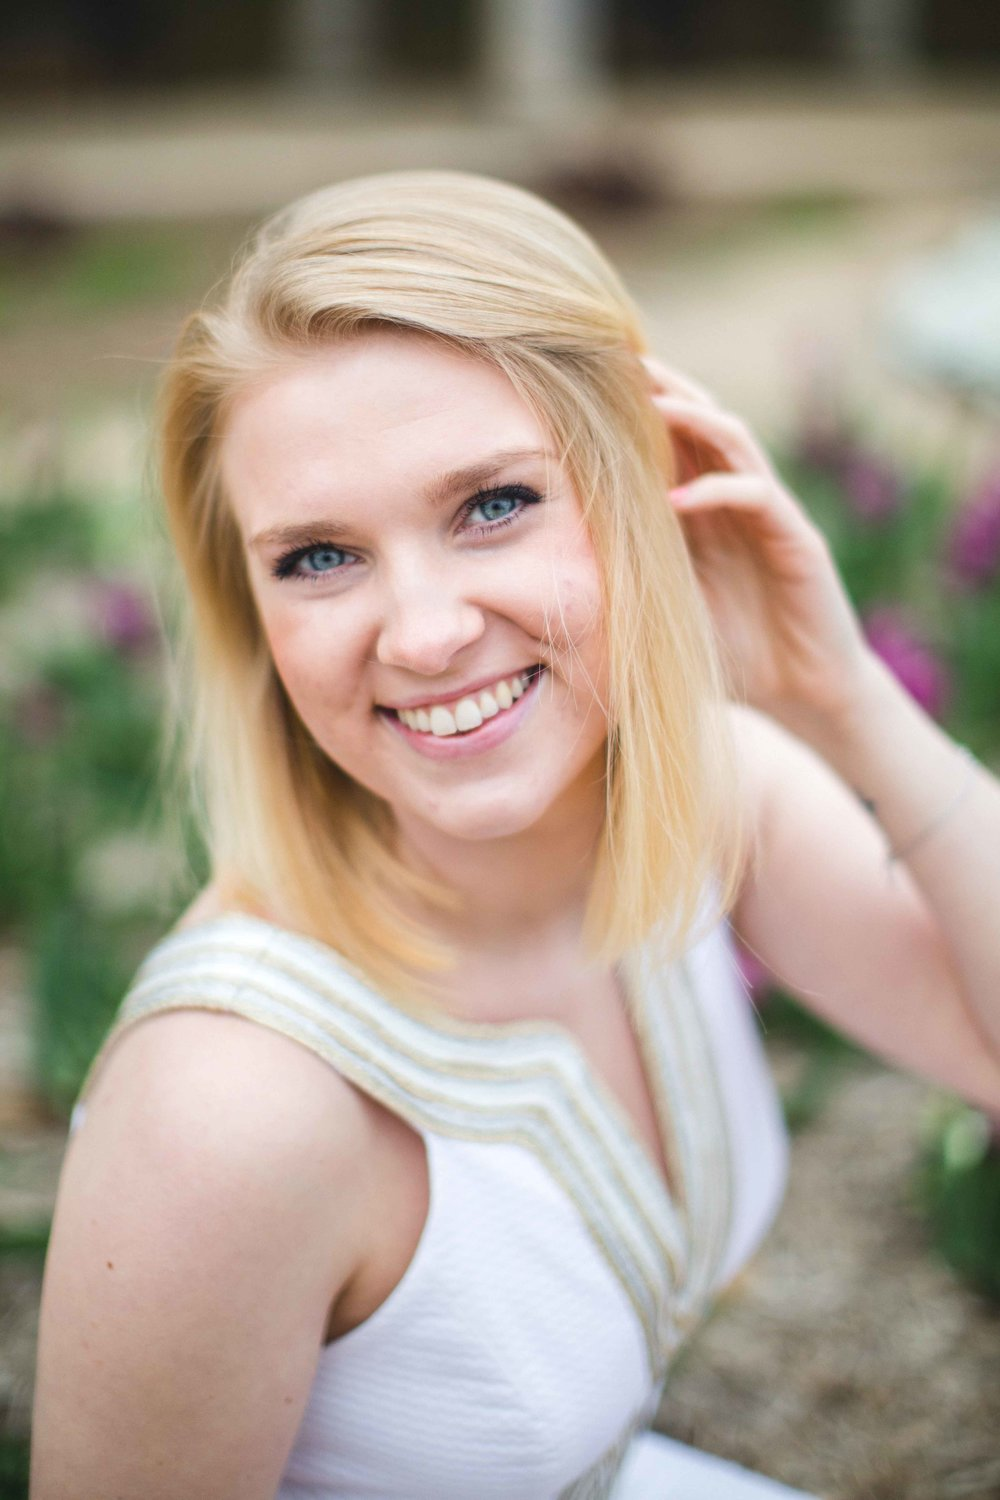 maymont-richmond-senior-portraits-vcu-graduation-richmond-wedding-photographer-10.jpg